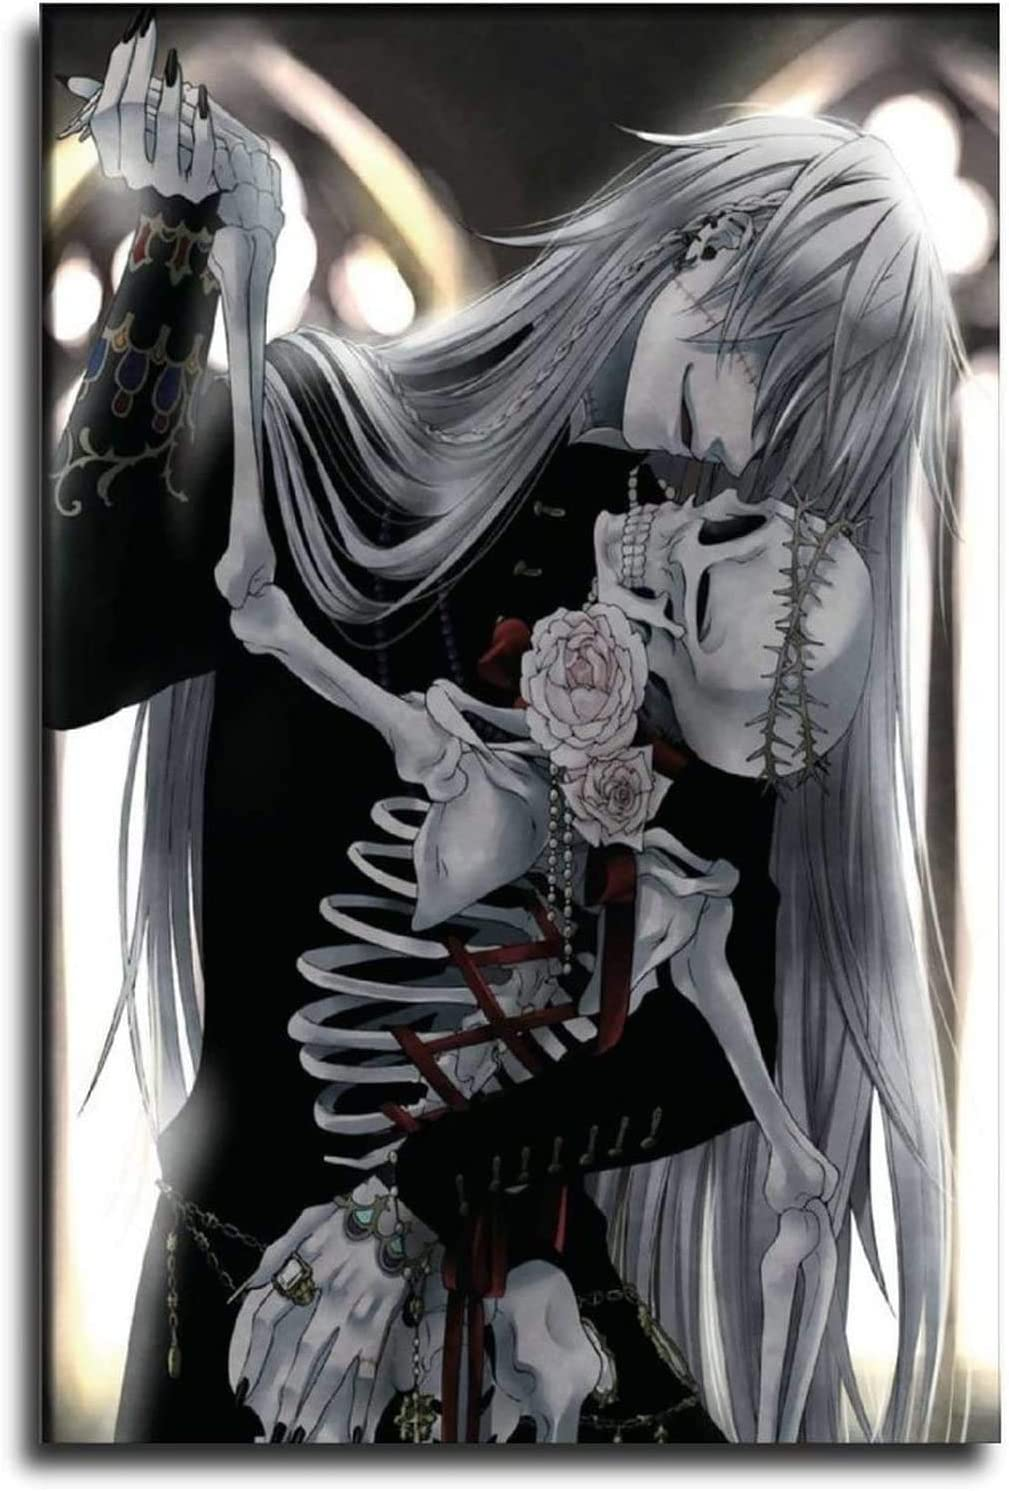 Undertaker Max 77% OFF Black Butler Canvas Painting Print Art Oil Cash special price Anime Wall